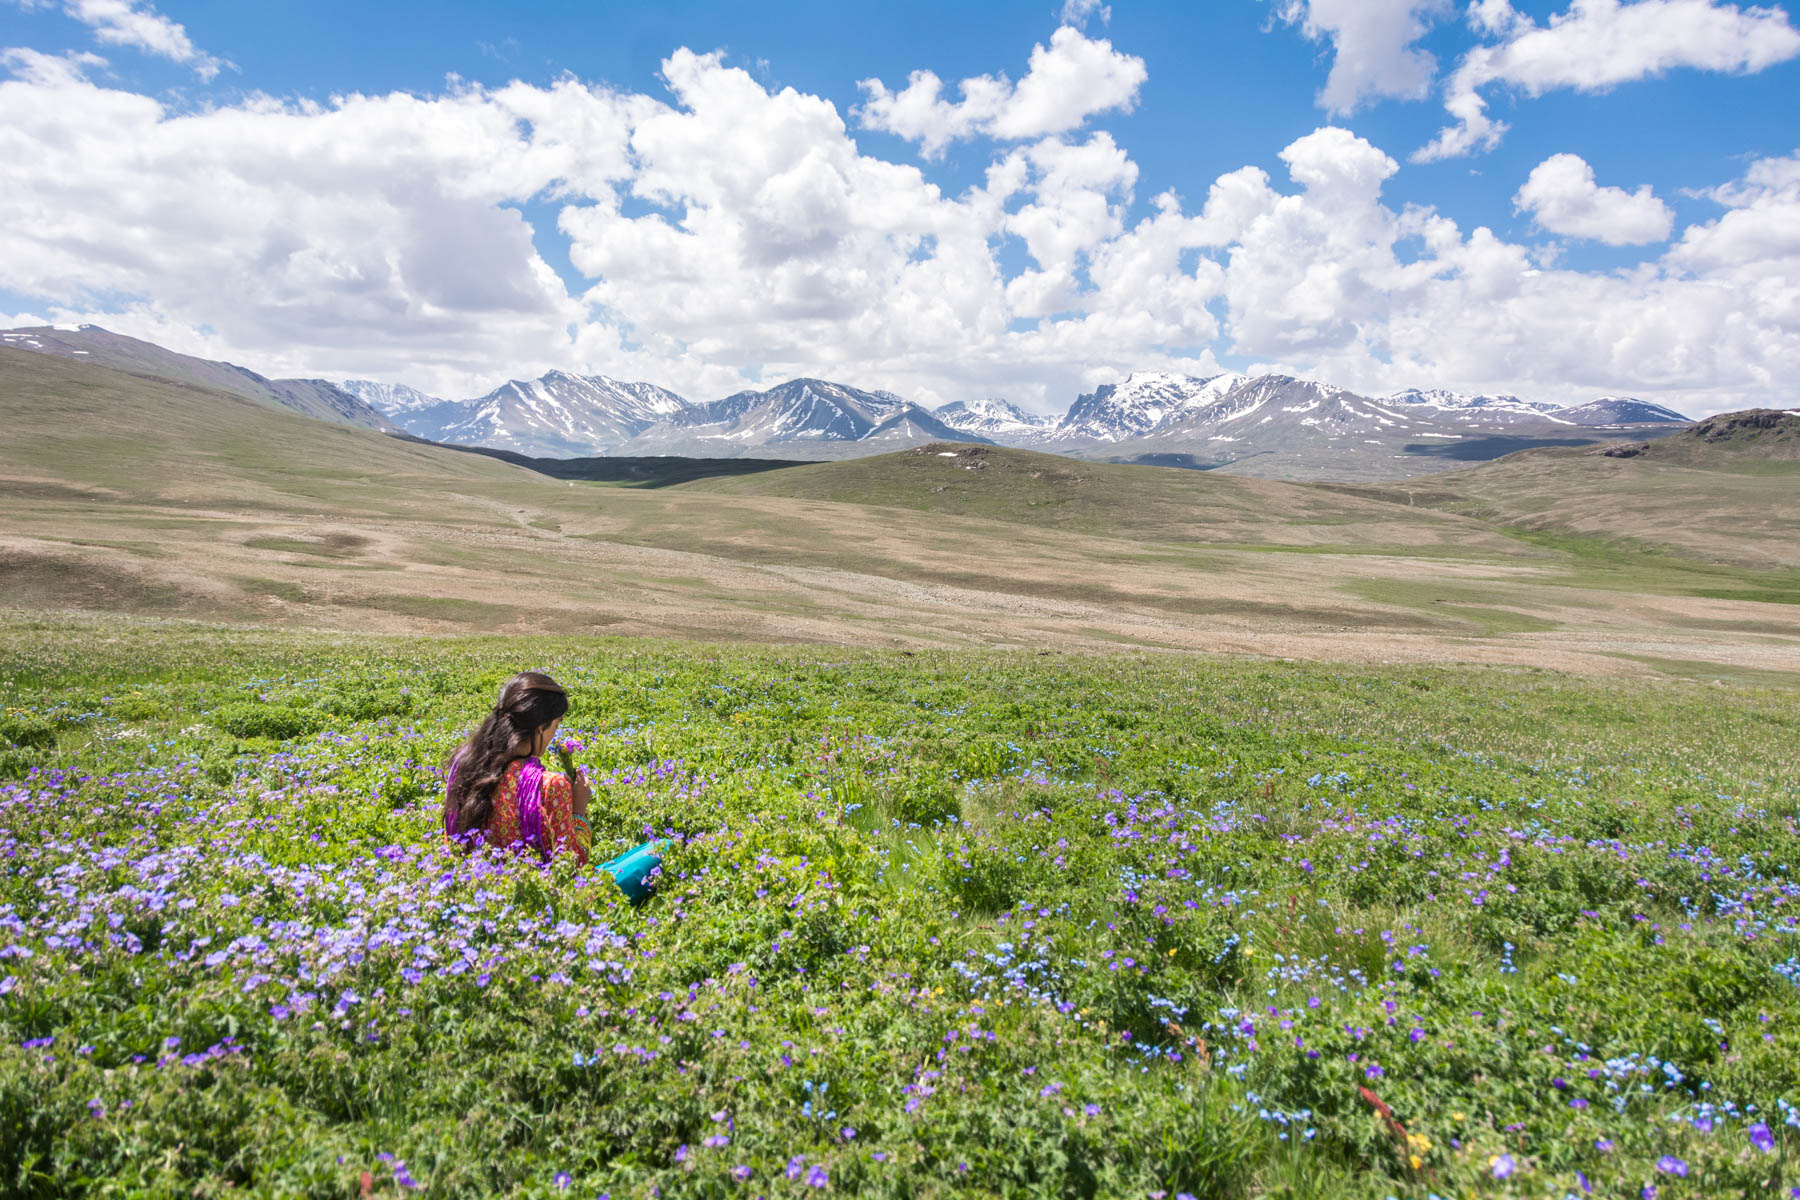 A girl sitting in the flower fields of Deosai National Park, Pakistan